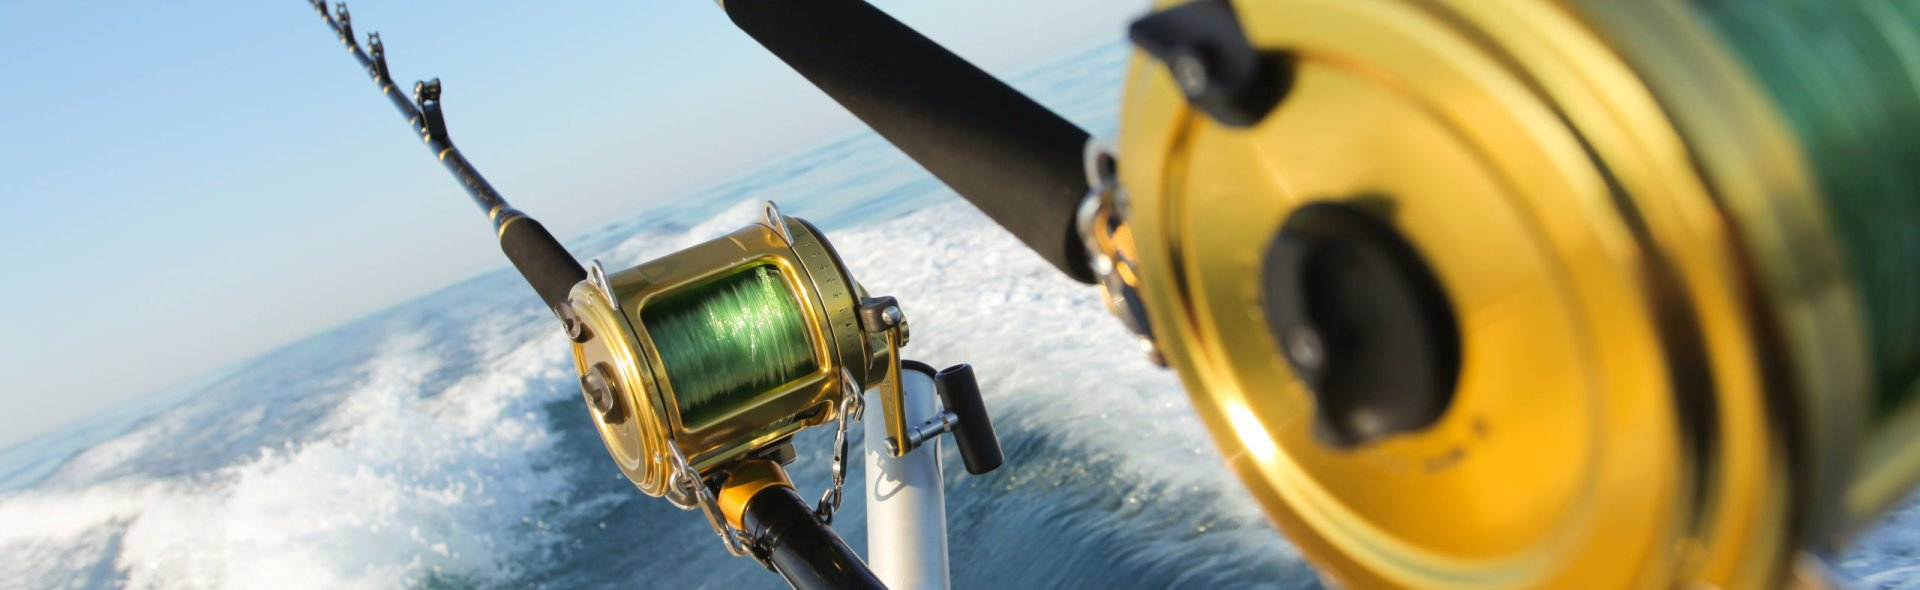 Shutterstock 95447302 big game fishing reels.